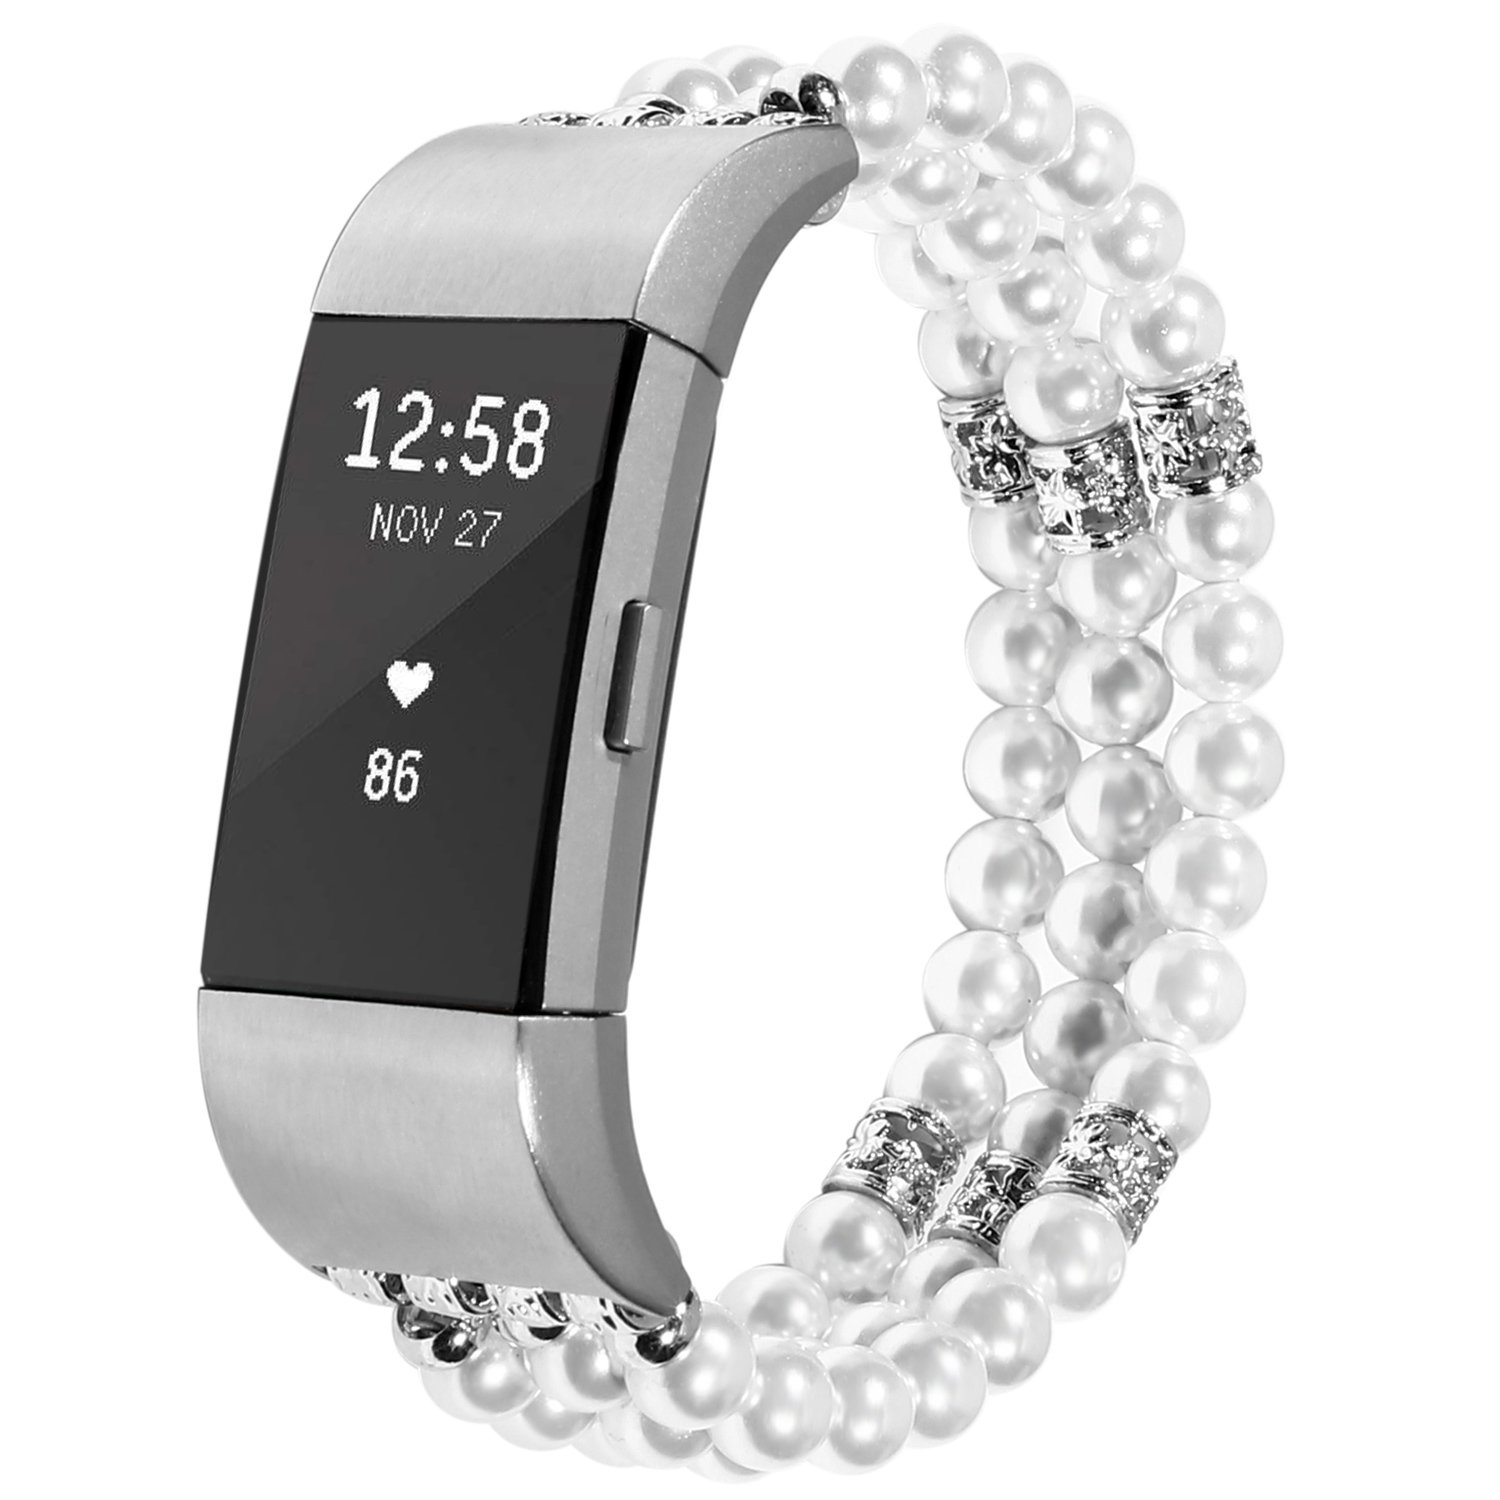 For Fitbit Charge 2 Bands, Imymax Women Replacement Dressy Artificial Pearl Elastic Handmade Bracelet/Wrist band for Fitbit Charge hr 2 Smart Watch (Pearl White)